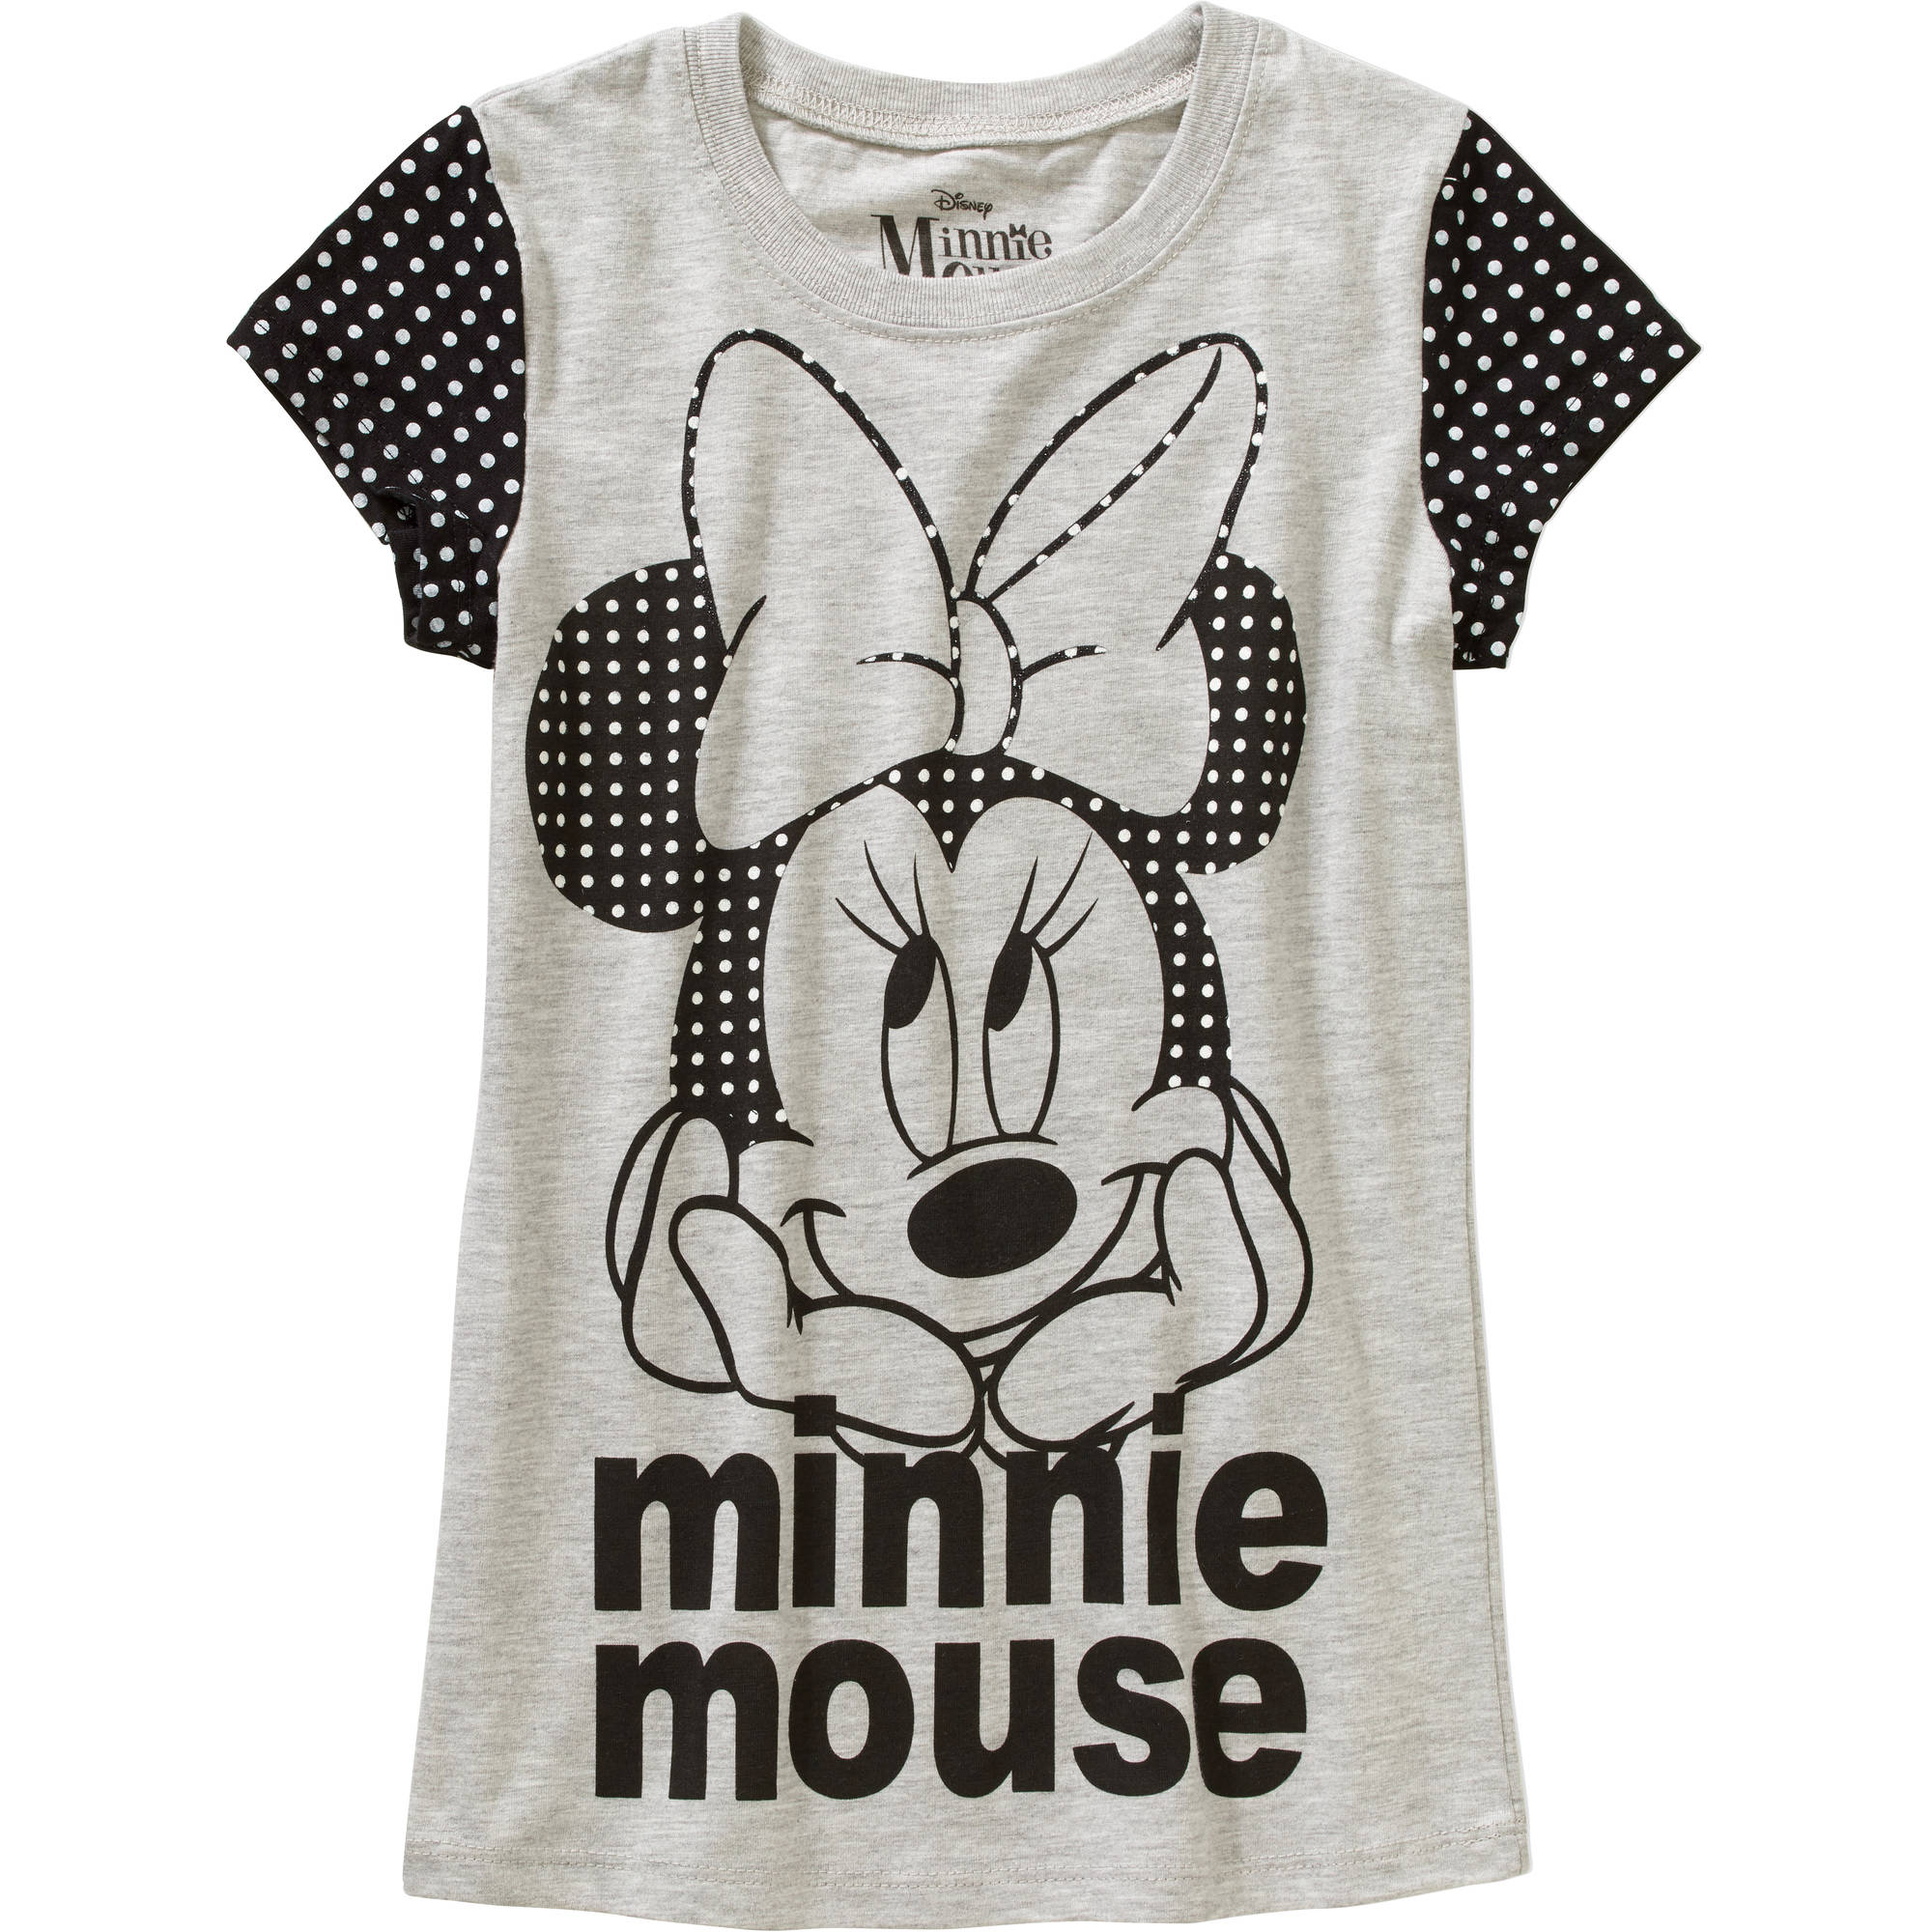 Girls' Polka Dots Minnie Mouse Short Sleeve Crew Neck Graphic Tee